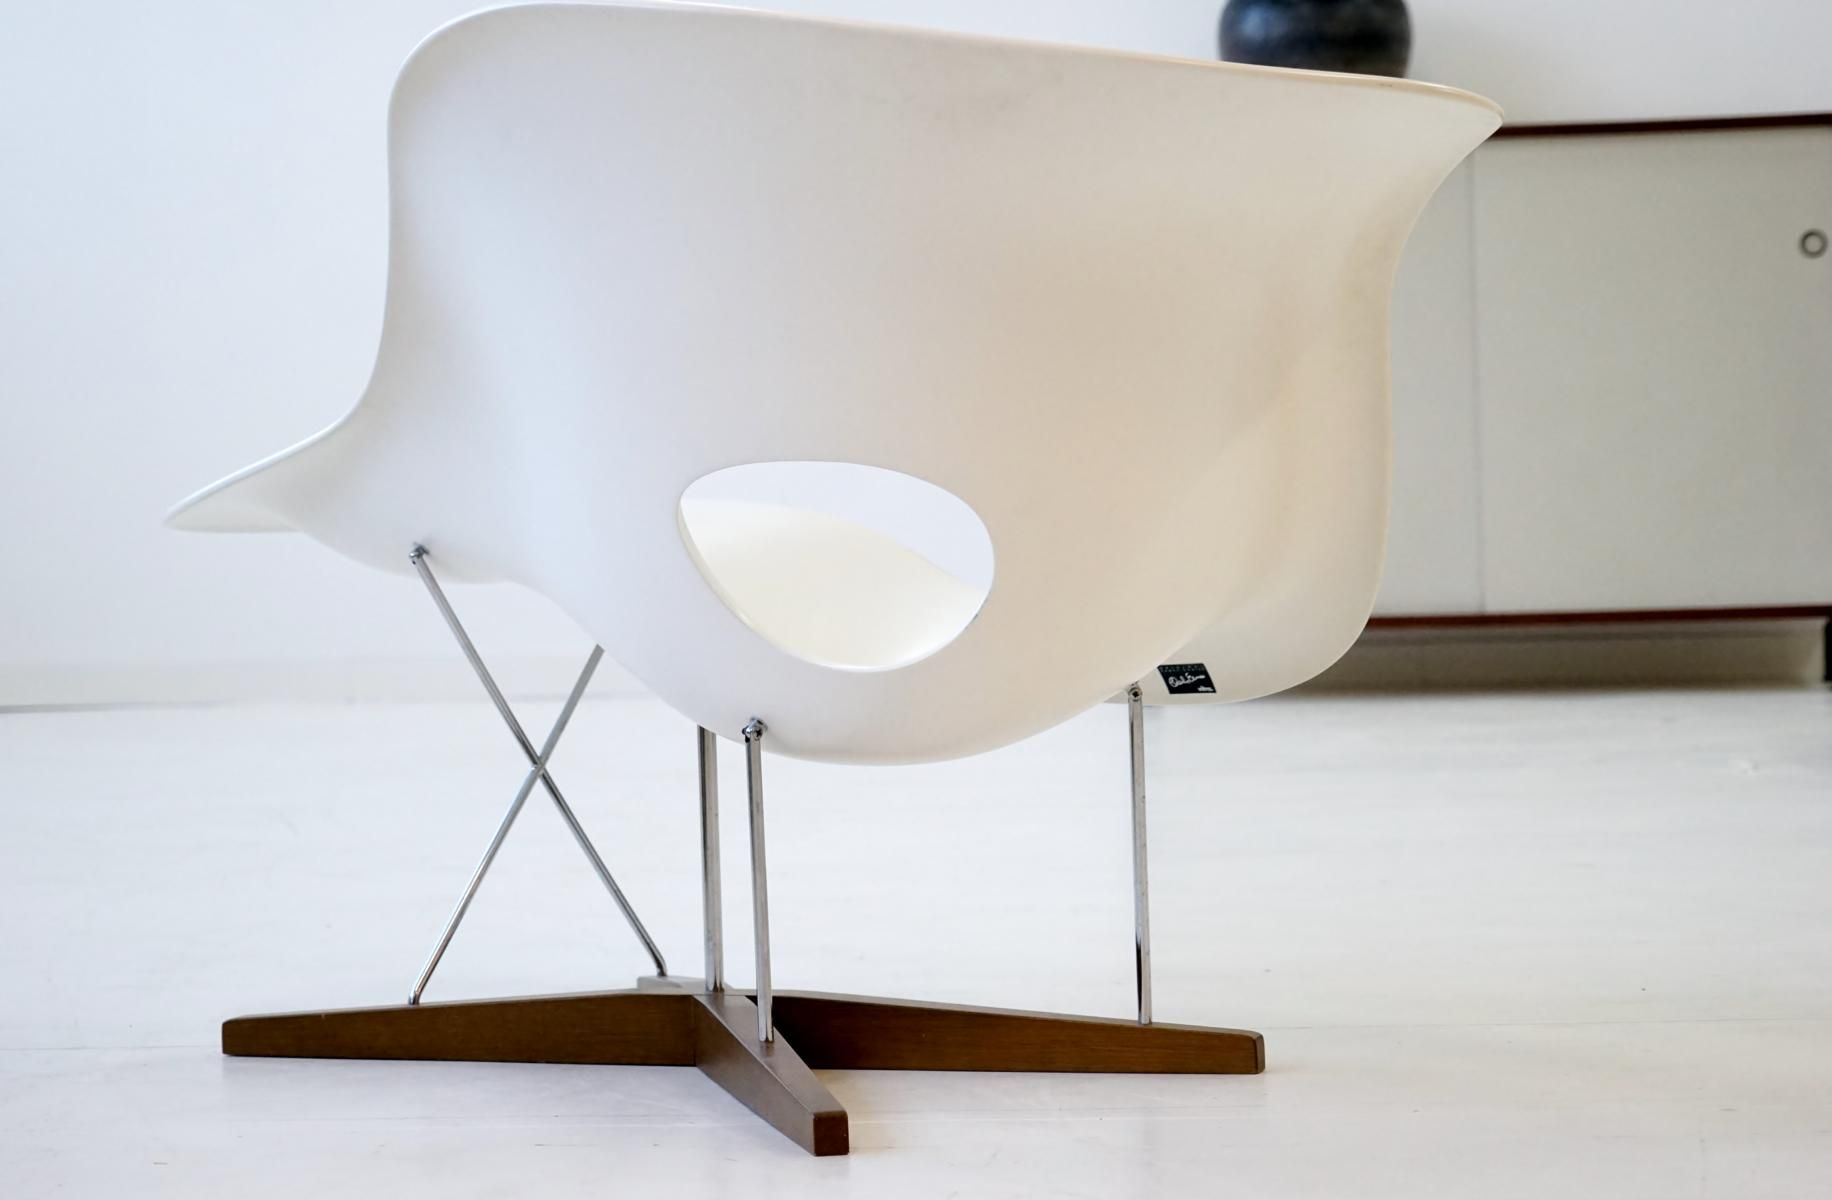 Vintage la chaise by eames for vitra for sale at pamono for Chaise design eames